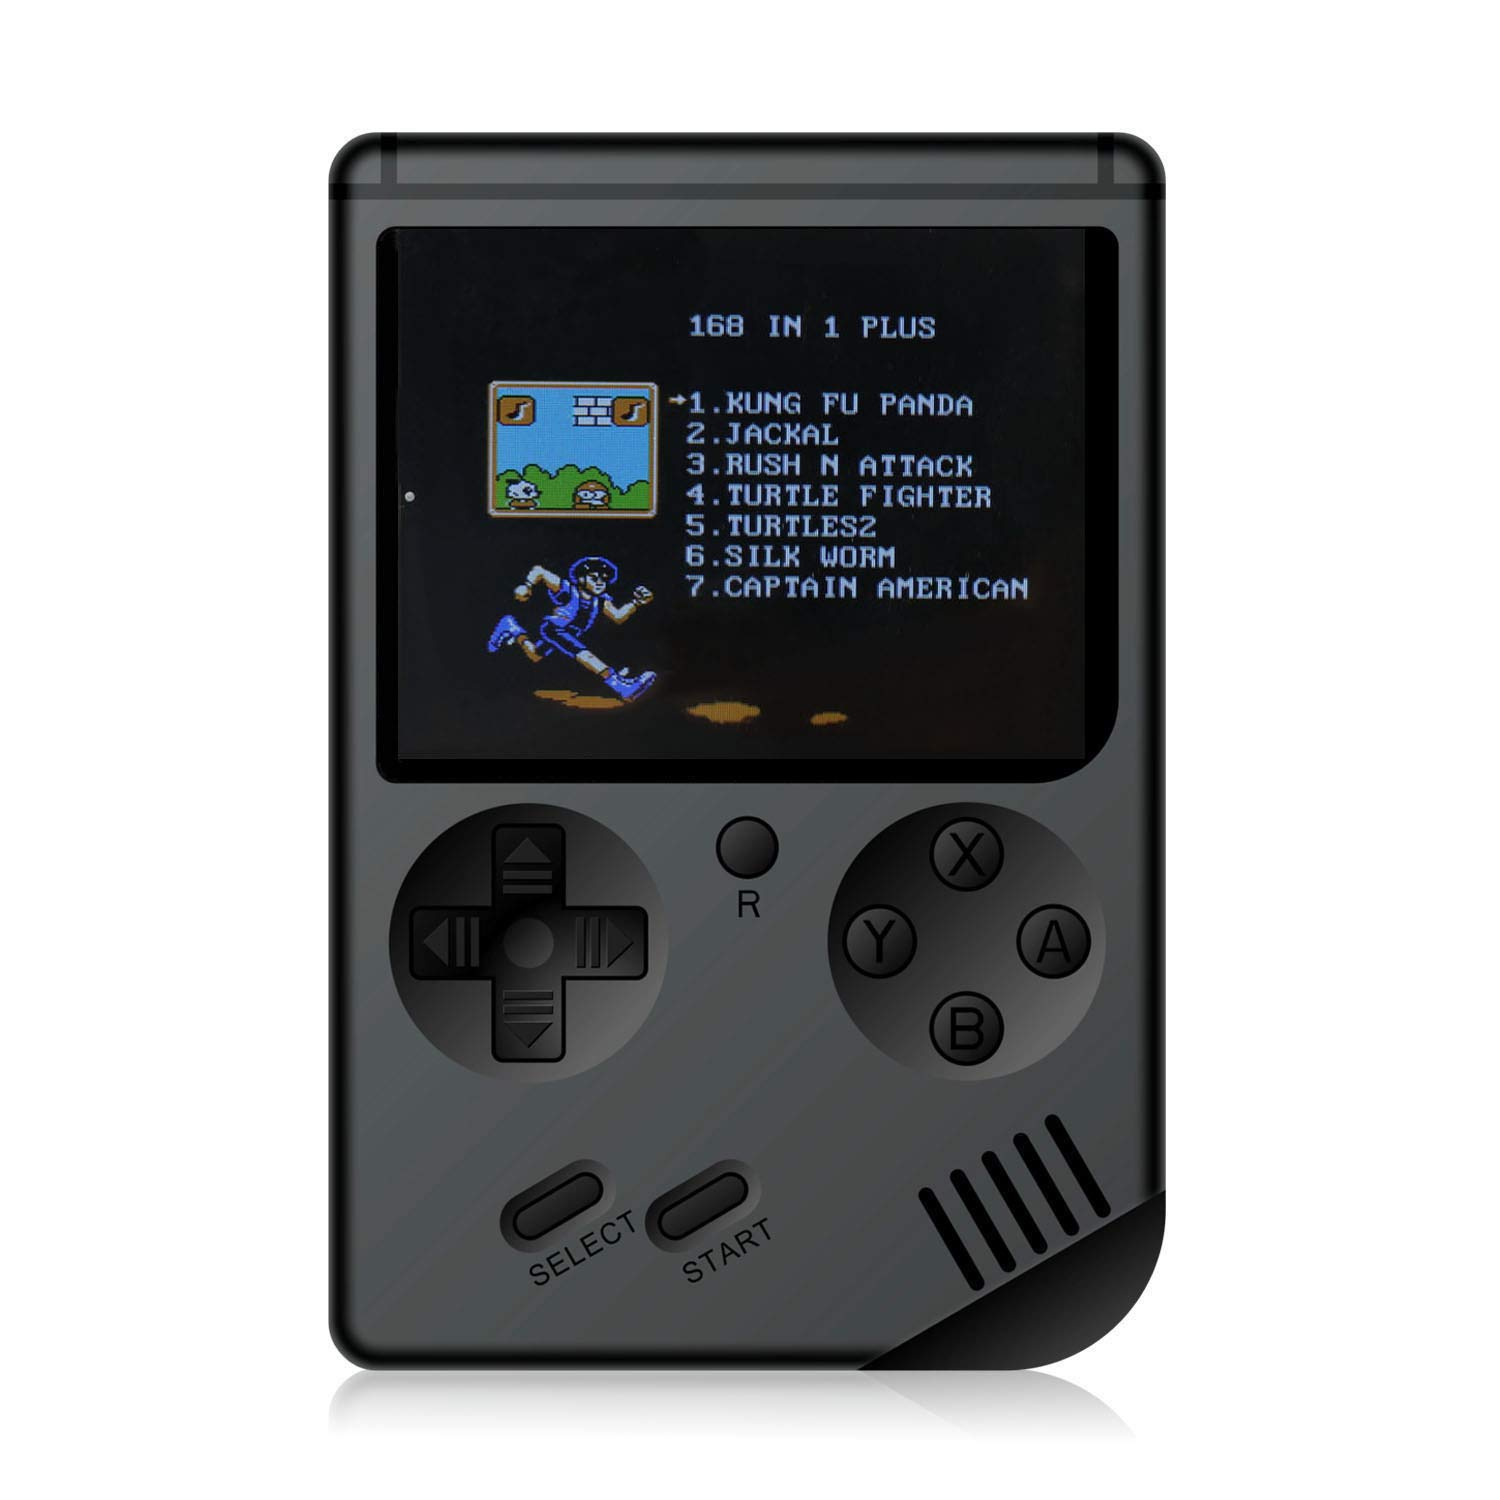 JadeTech Retro Handheld Games Console - 168 Classic Games 8 Bit Games 3 inch Screen Video Games with AV Cable Play on TV (Black)